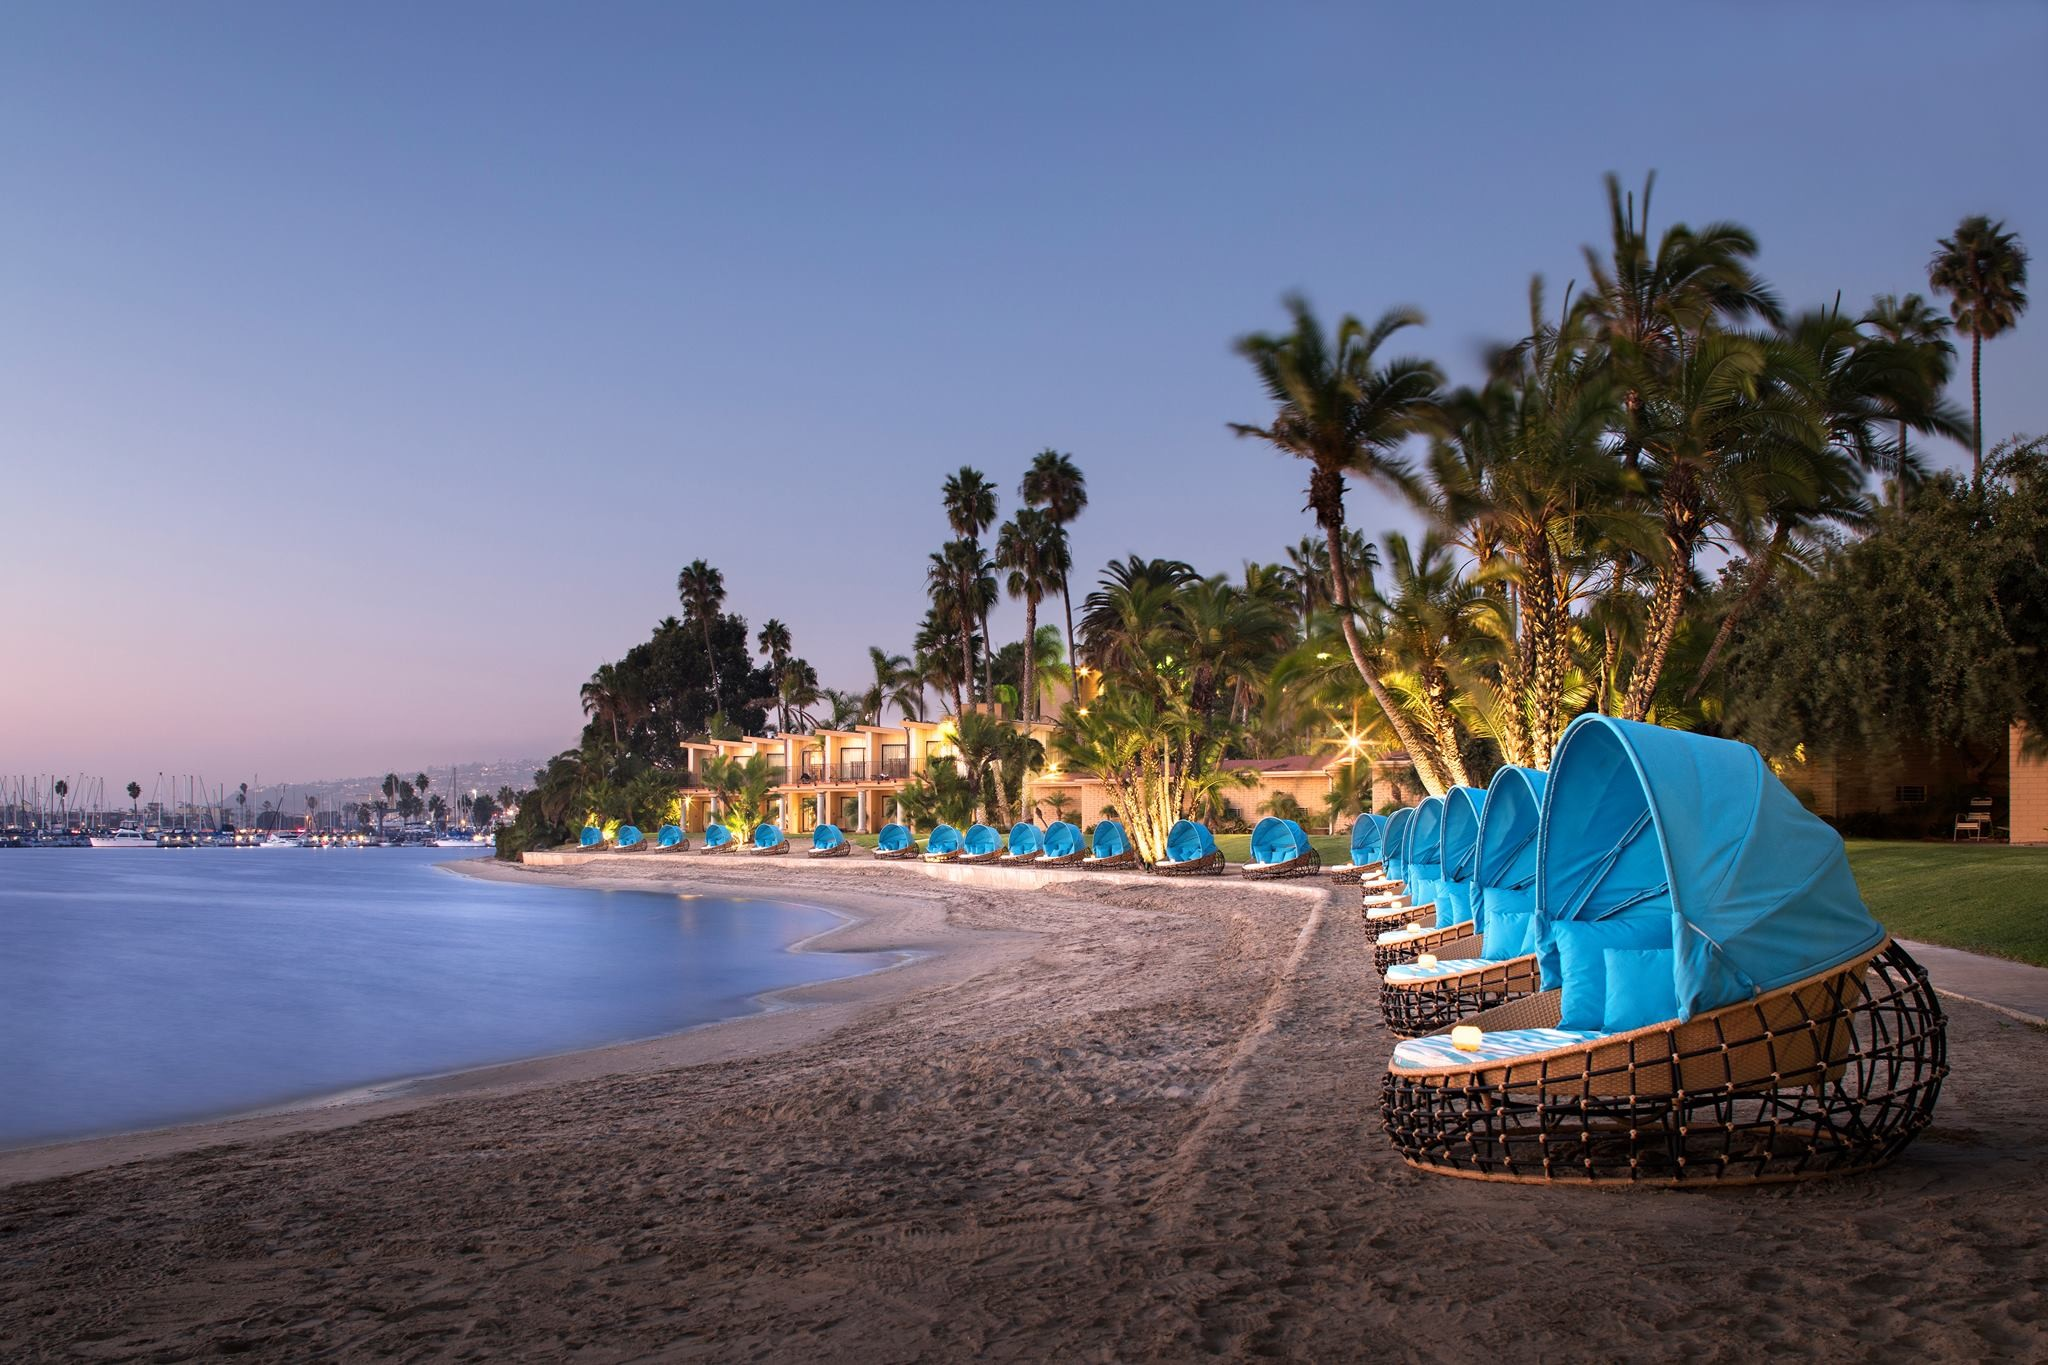 Witness the Enthralling Things in Bahia On Your Luxury Vacvation